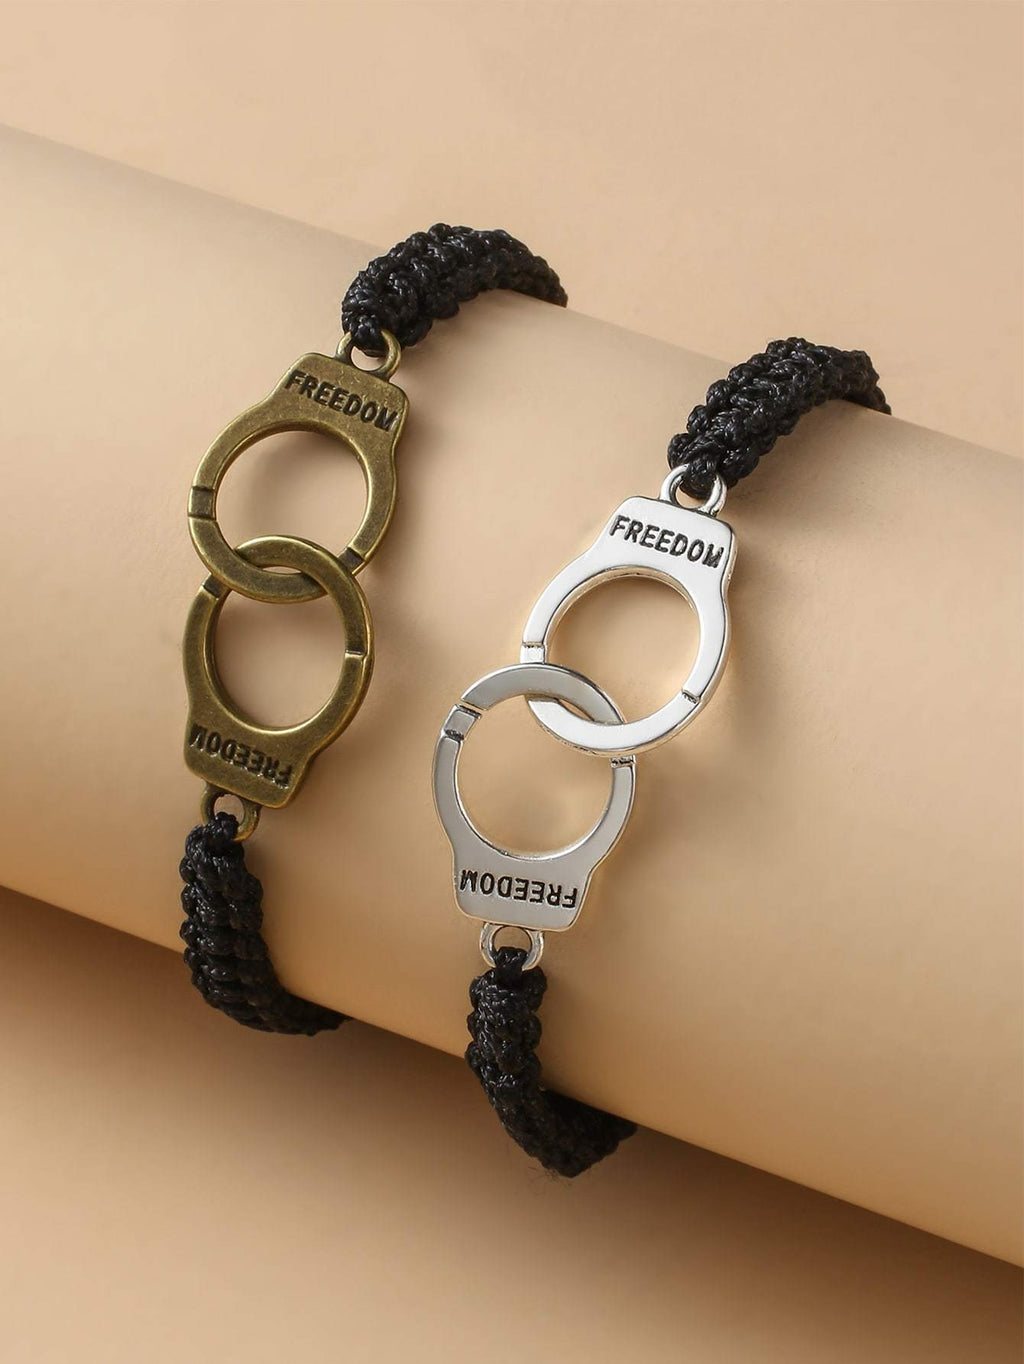 2pcs Handcuffs Decor String Couple Bracelet Shop n Save Pakistan